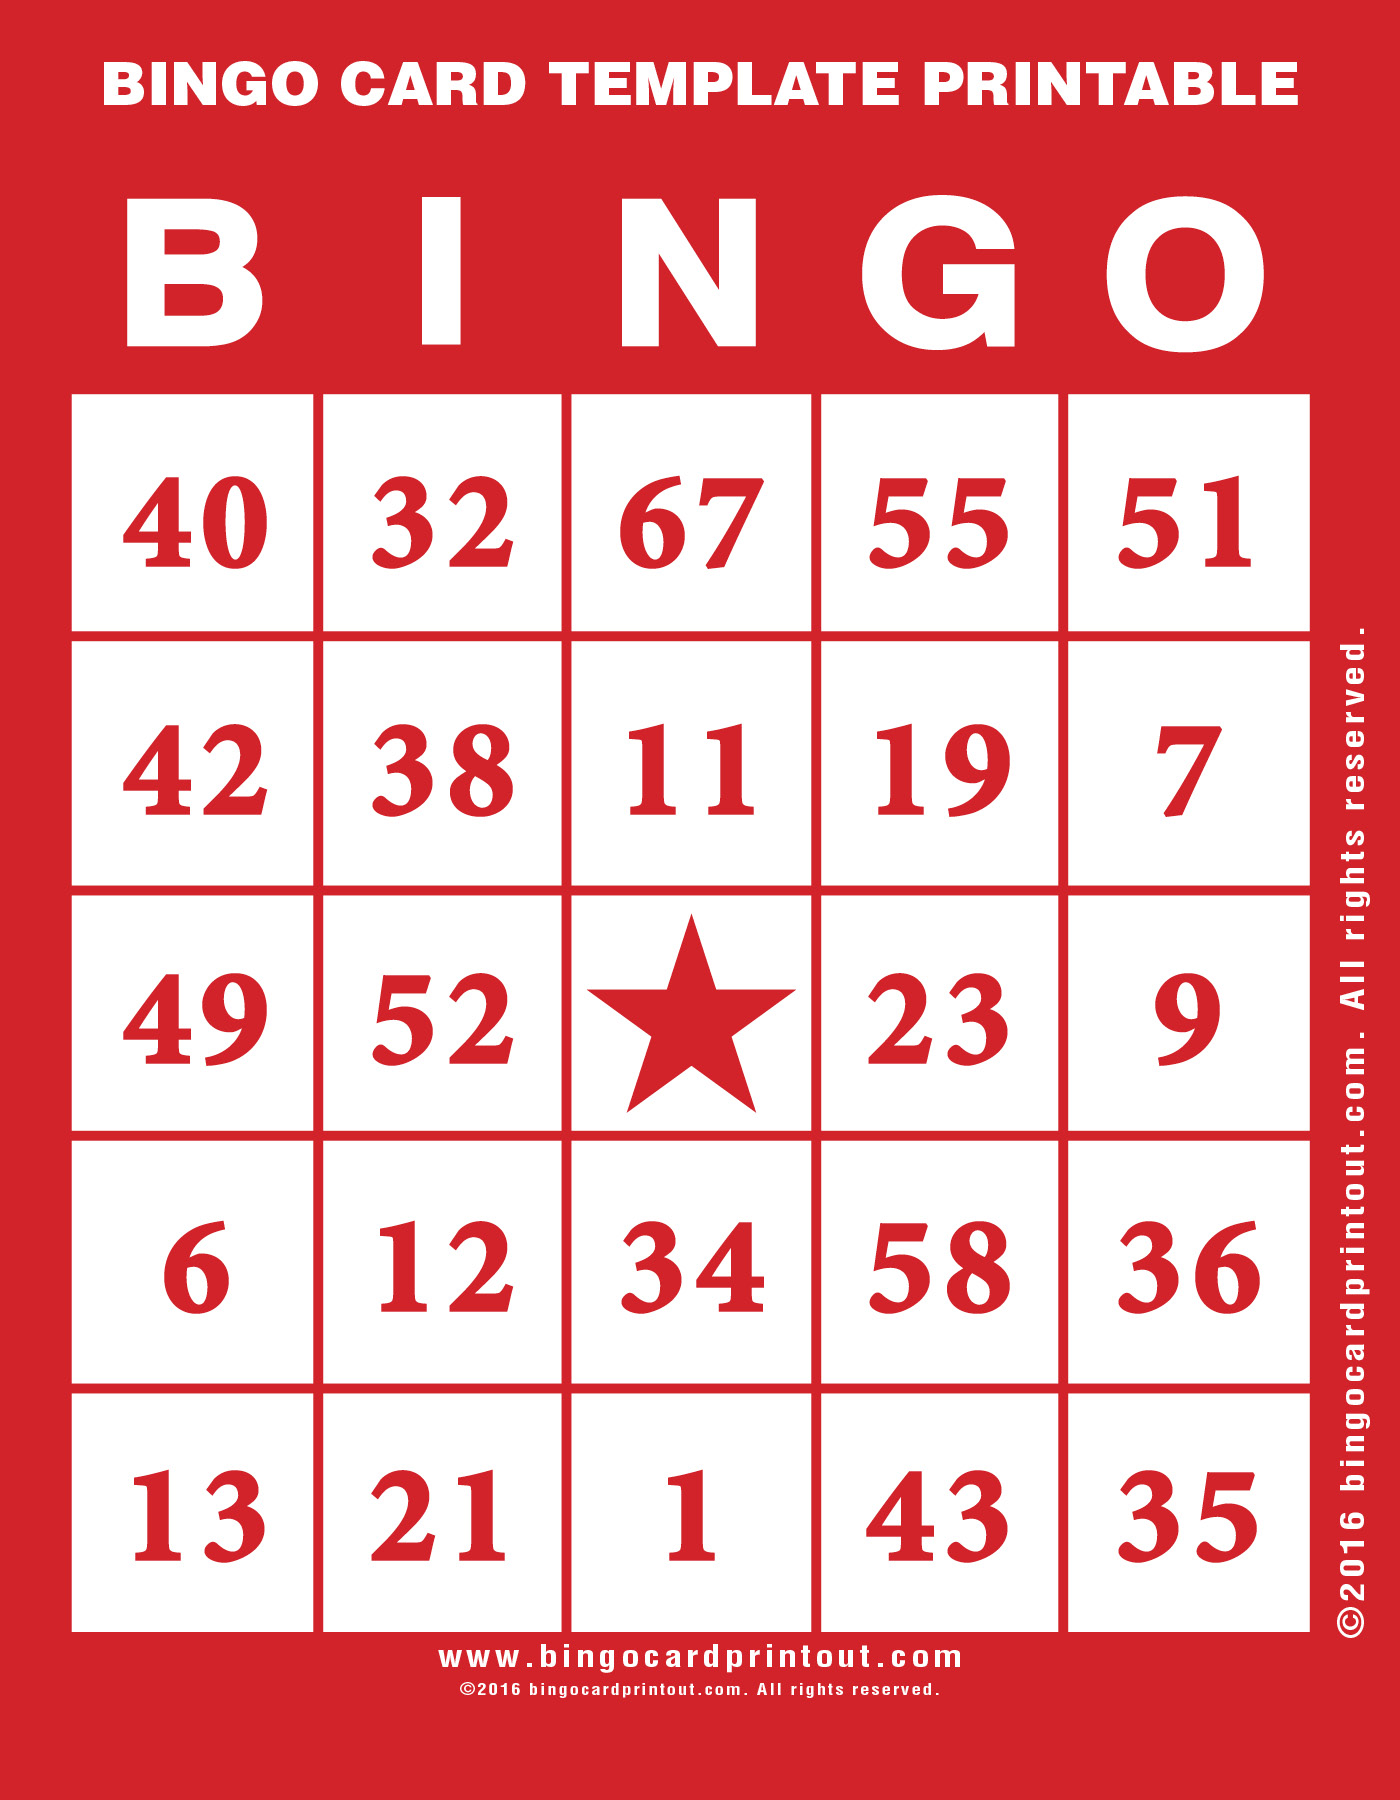 bingo card template printable. Black Bedroom Furniture Sets. Home Design Ideas